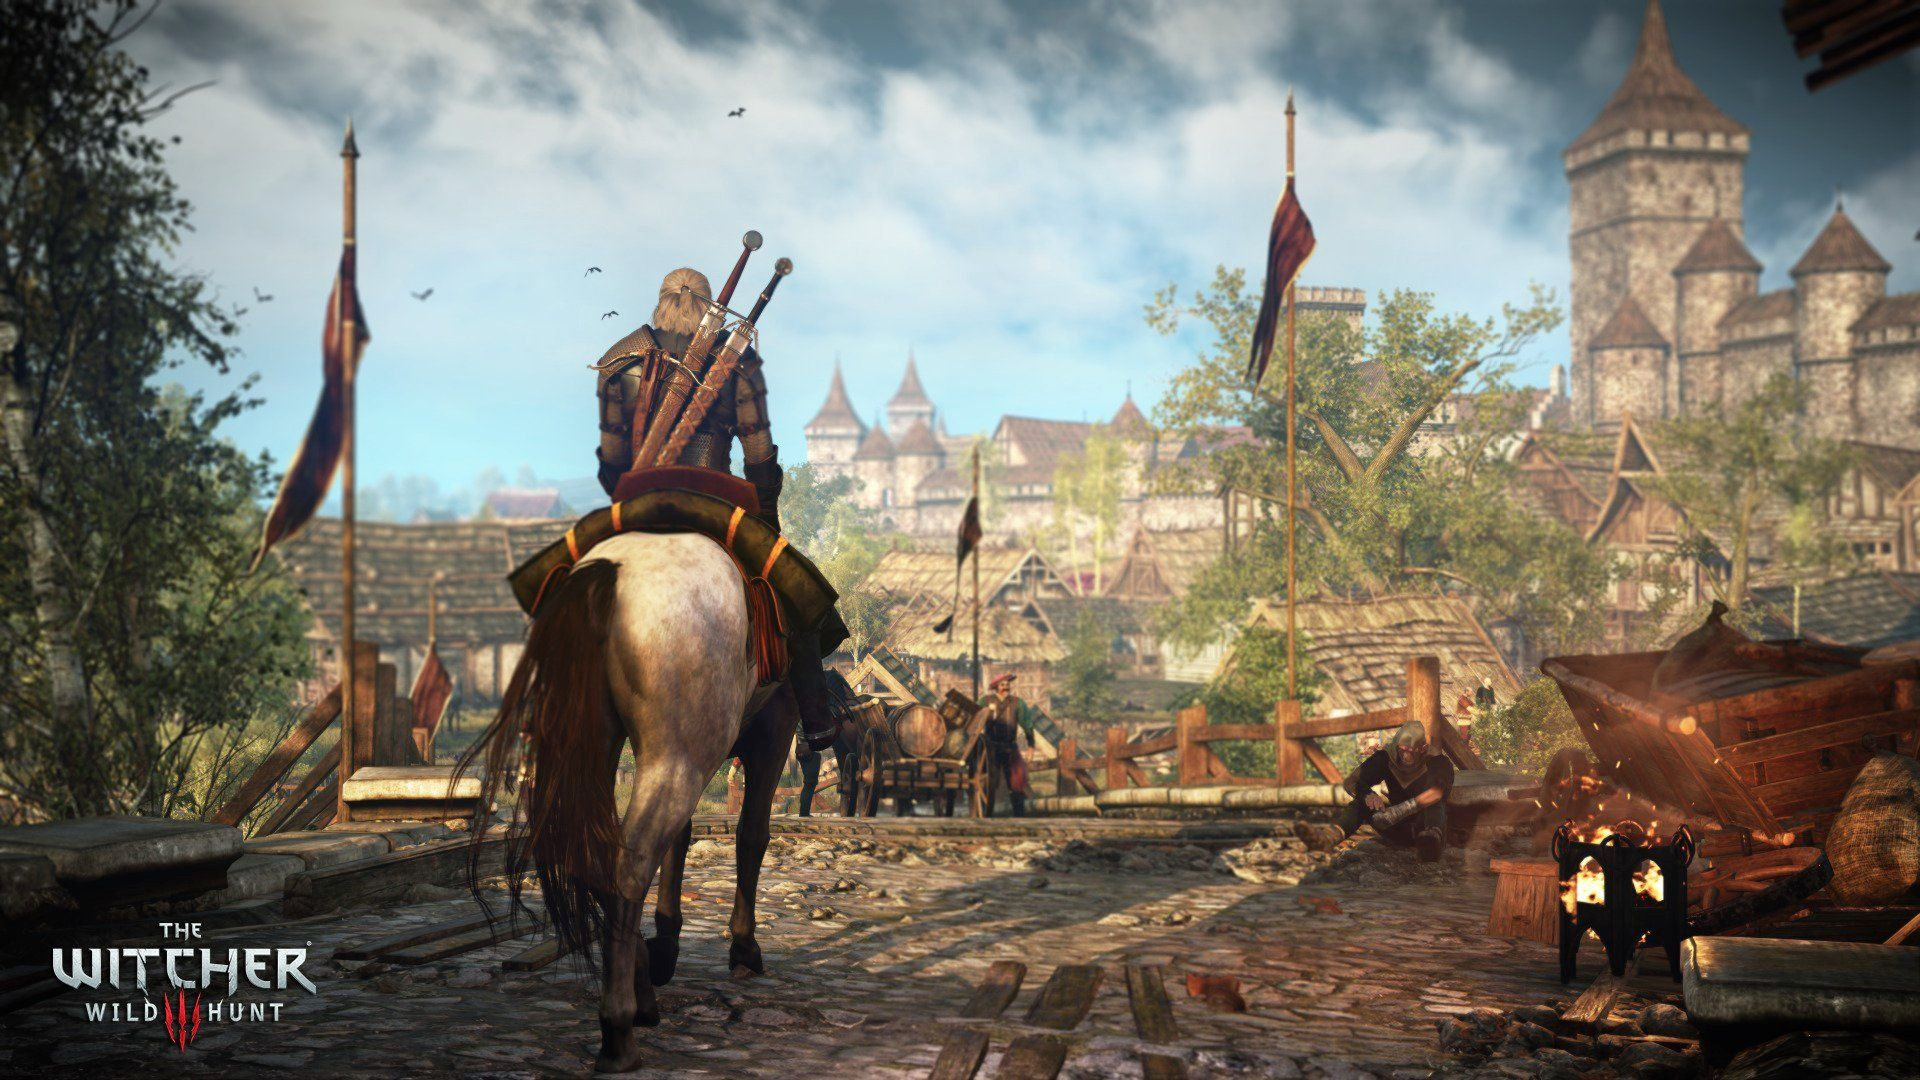 Witcher 3 Wallpaper Hd: The Witcher 3 Wild Hunt PS4 Game HD Wallpaper